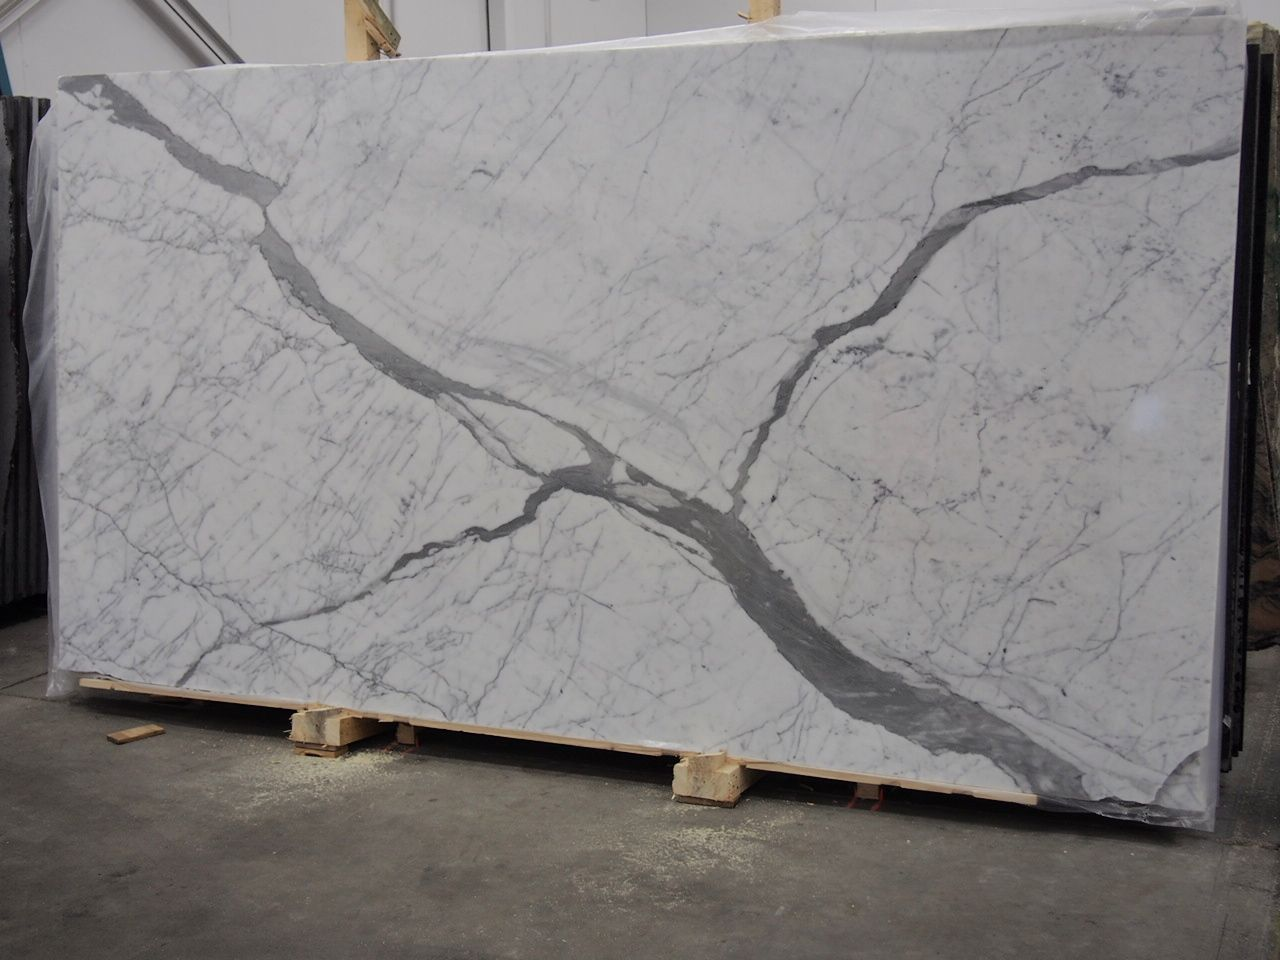 Statuario Premium Marble Slab Sold By Milestone Marble Size 71 X 135 X 3 4 Inches Stone Slab Marble Granite Stone Tiles